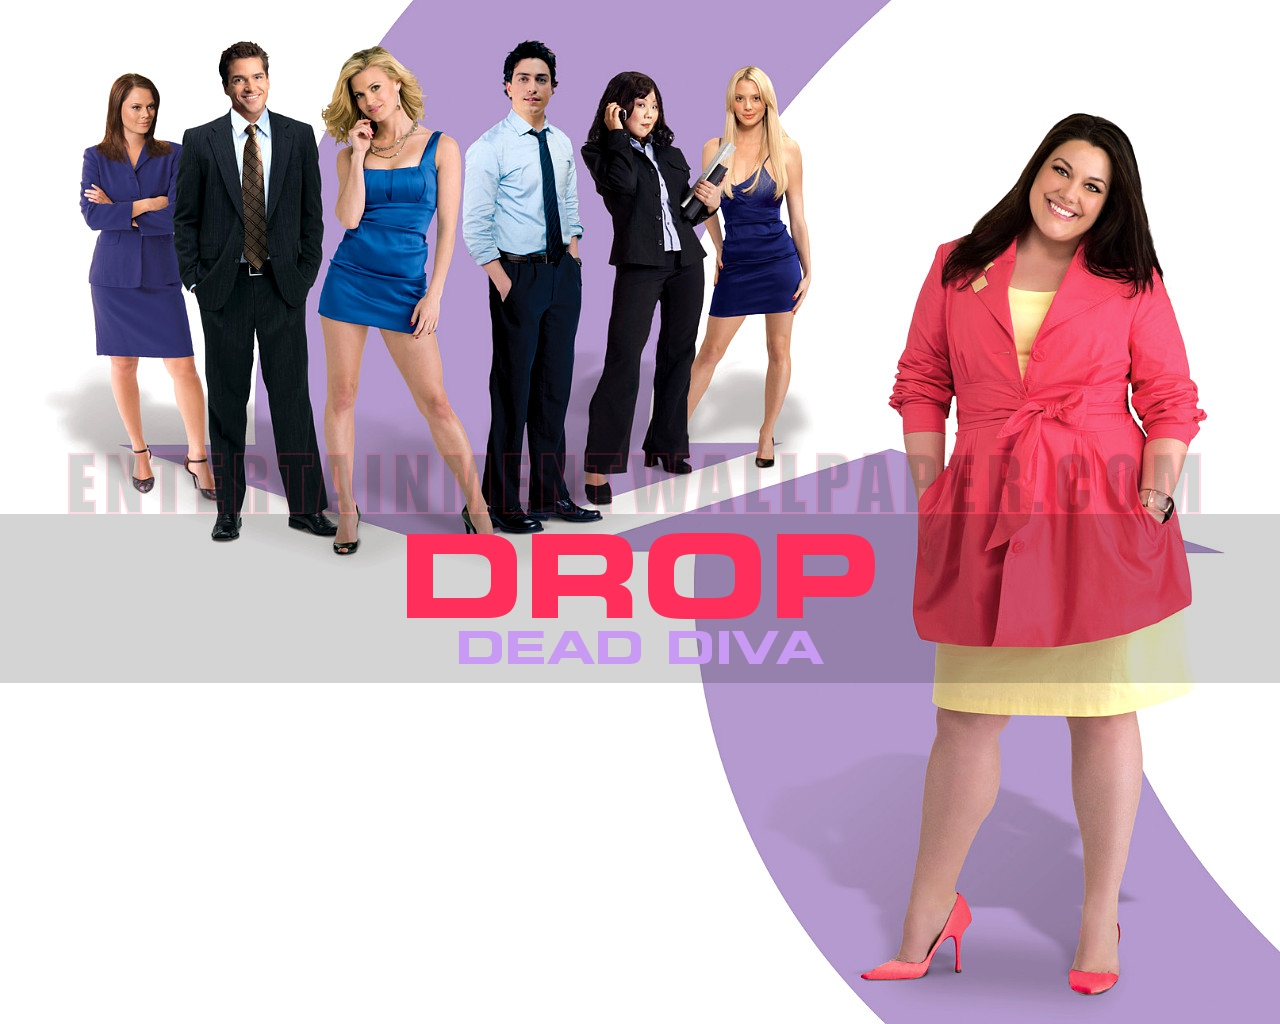 Drop dead diva season 5 smart4c - Drop dead diva season 5 episode 4 ...